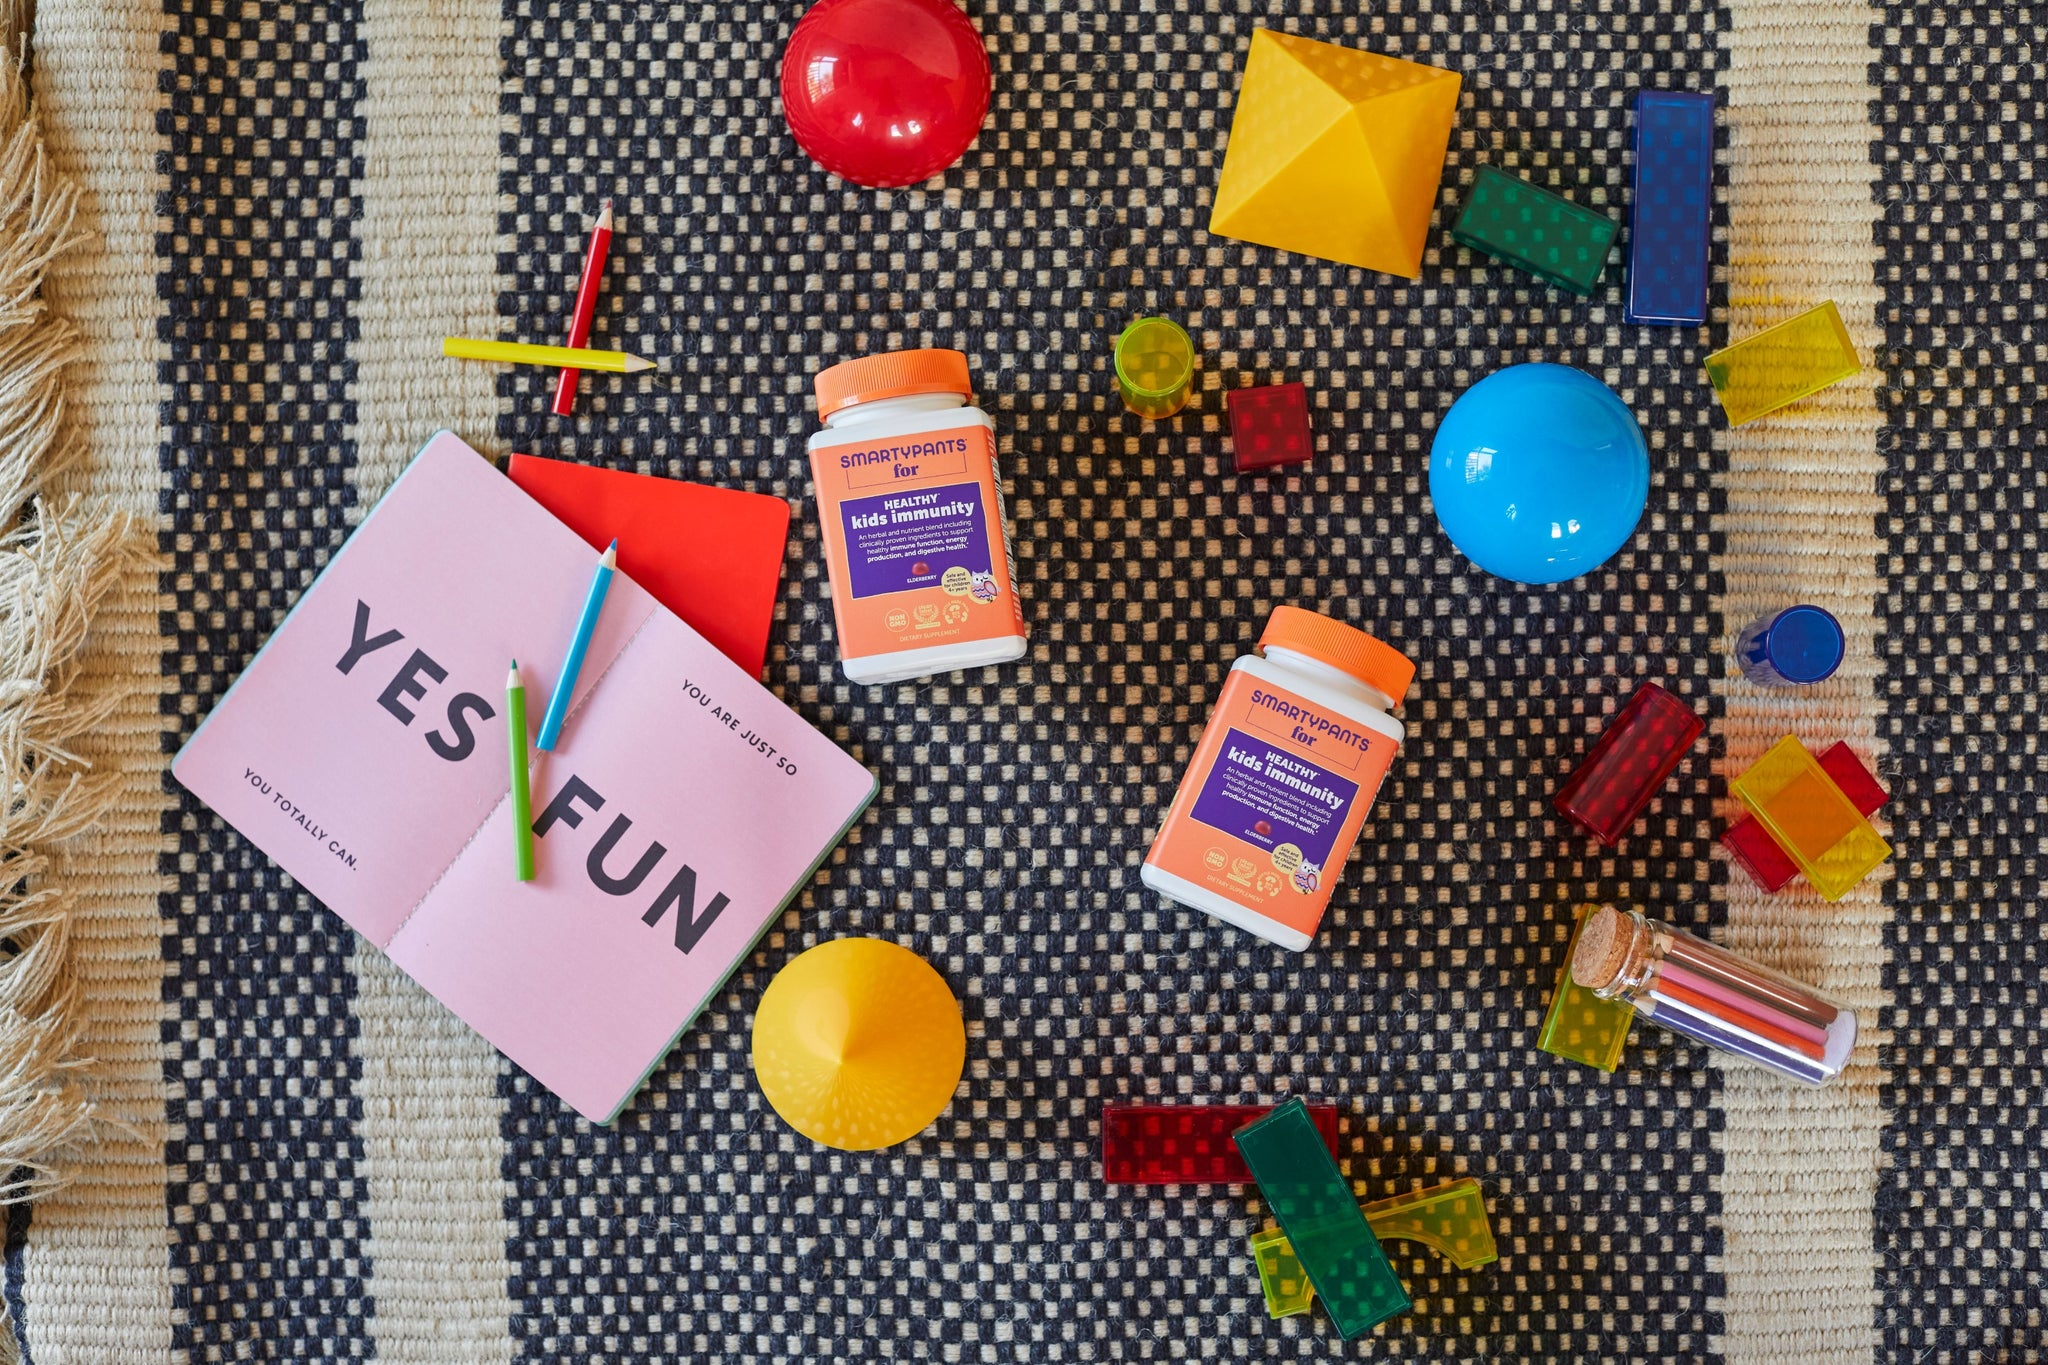 Two SmartyPants Healthy<sup>‡</sup> Kids Immunity* laying on a grey and white striped rug. Next to the bottles are kids toys like balls and blocks, colored pencils, and a book open to two pages. One page says YES and the other says FUN.